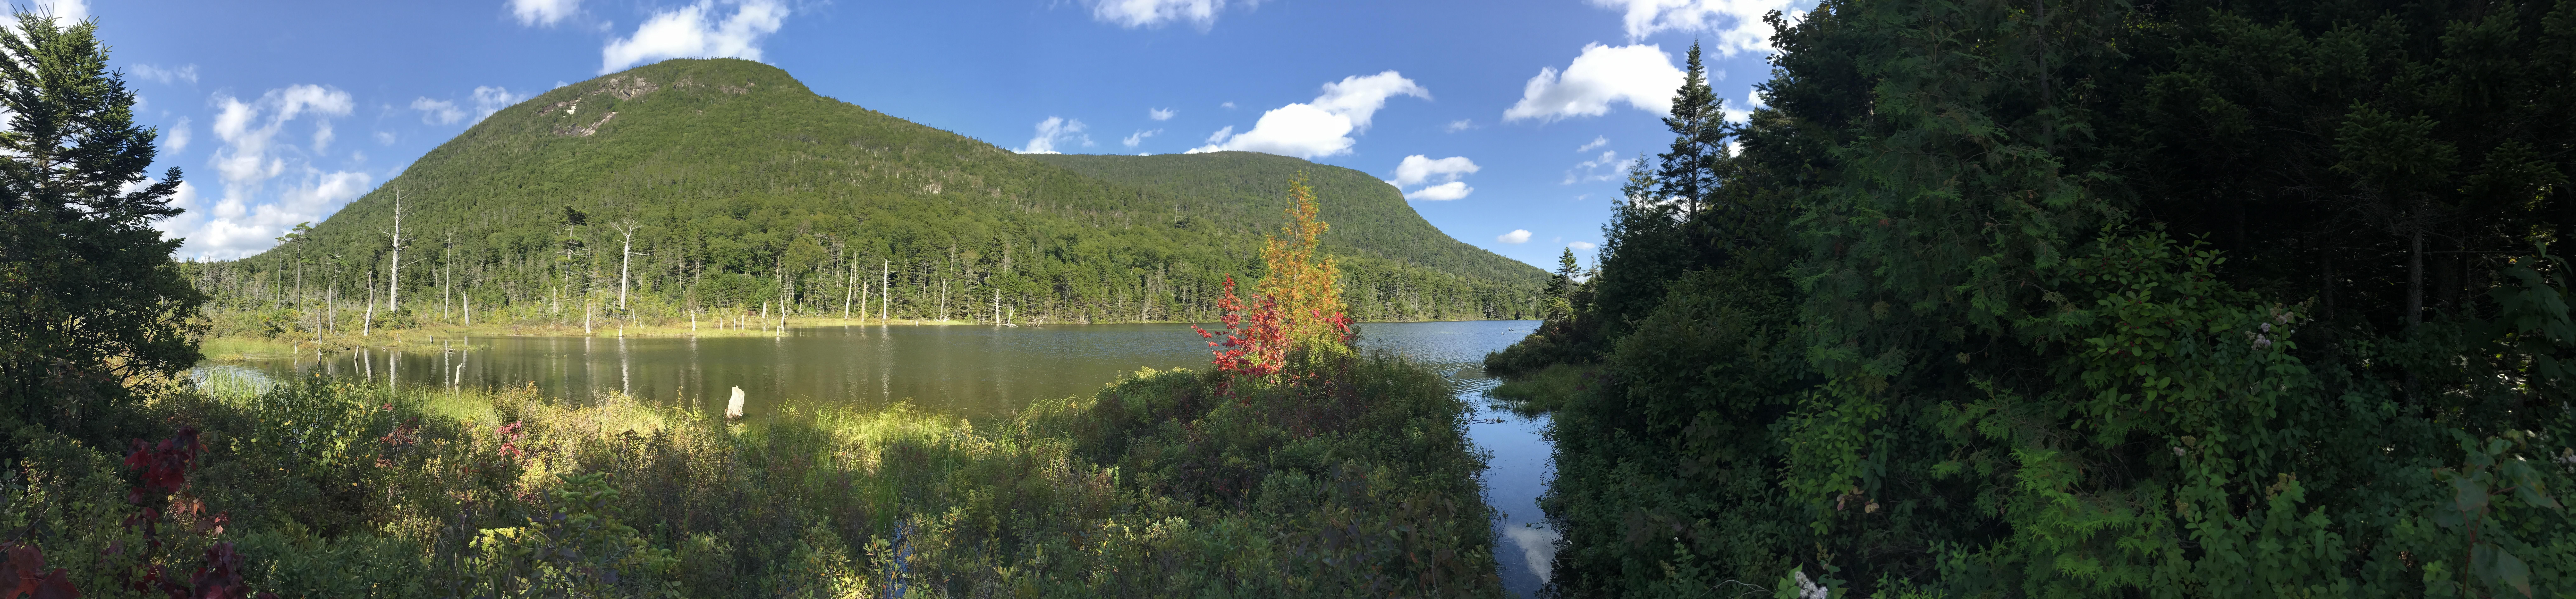 Greeley pond waterville valley new hampshire usa hiking